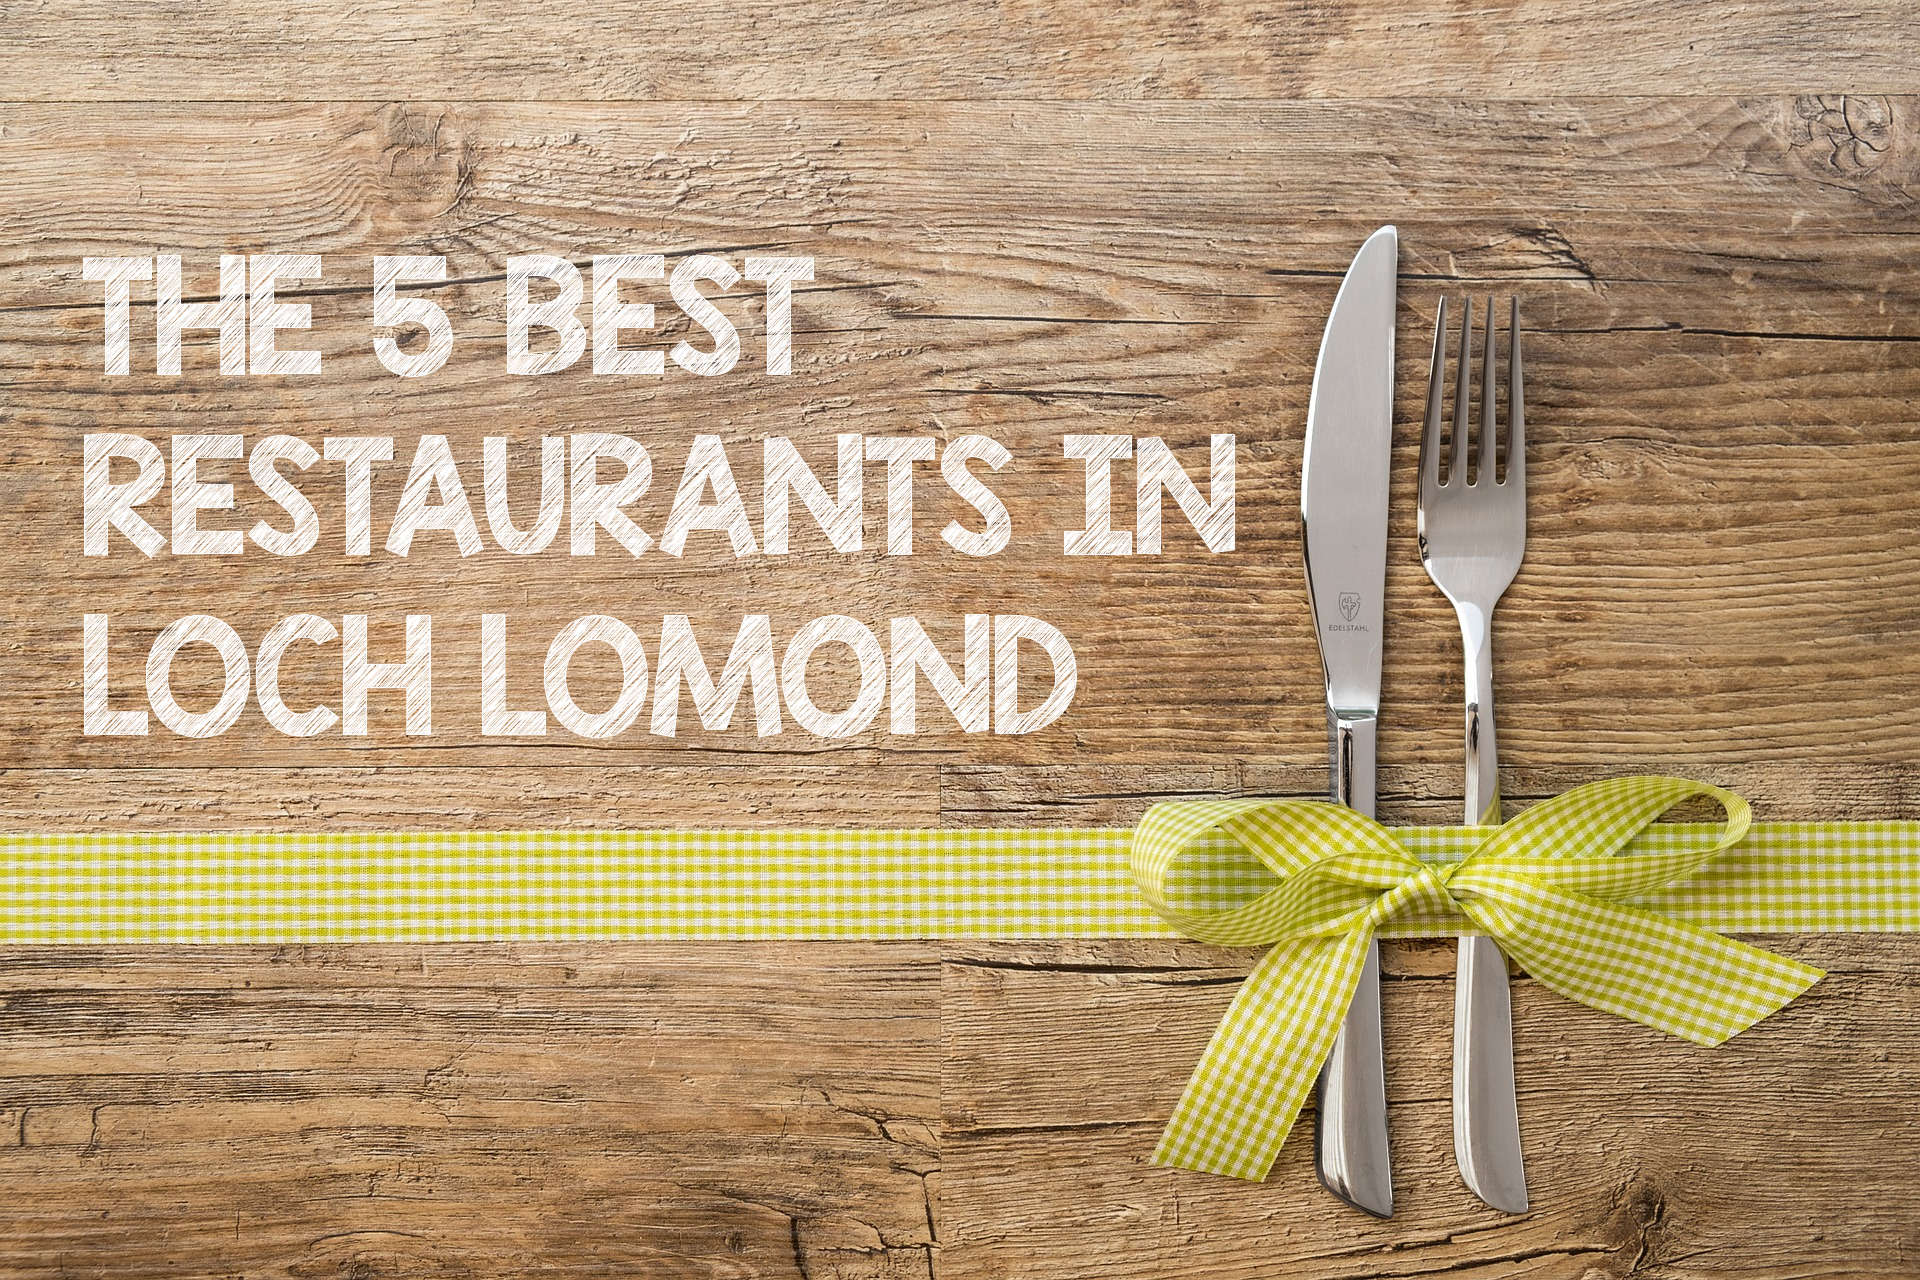 The best places to eat in loch lomond